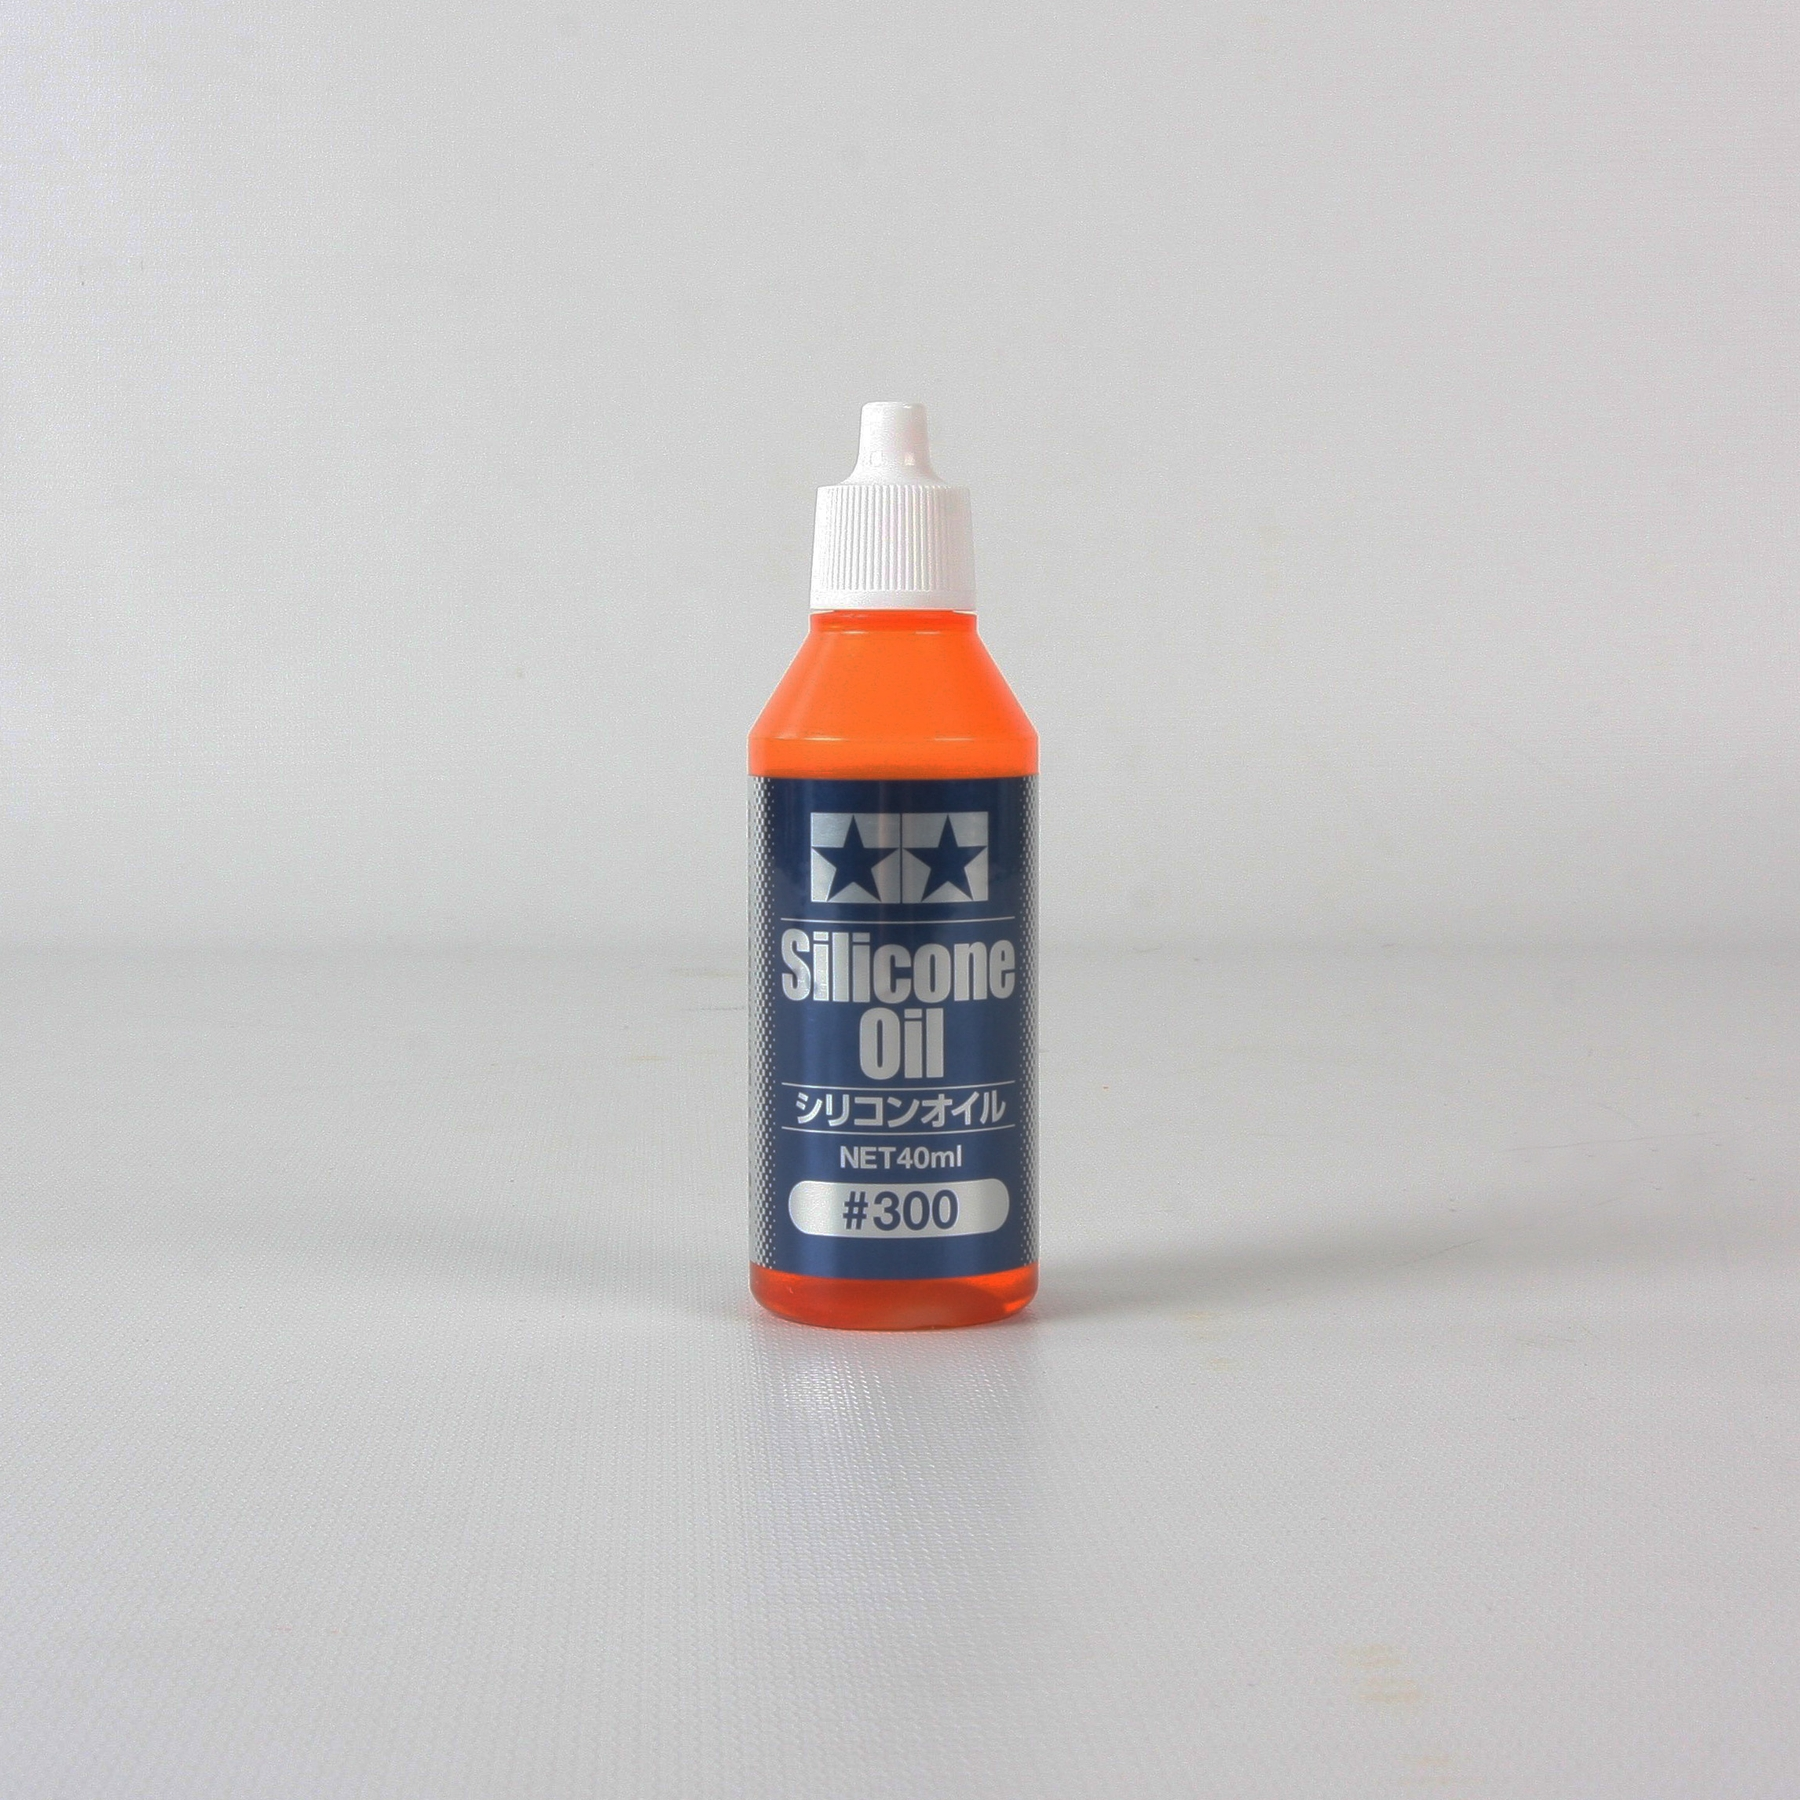 Rc Silicone Oil #300